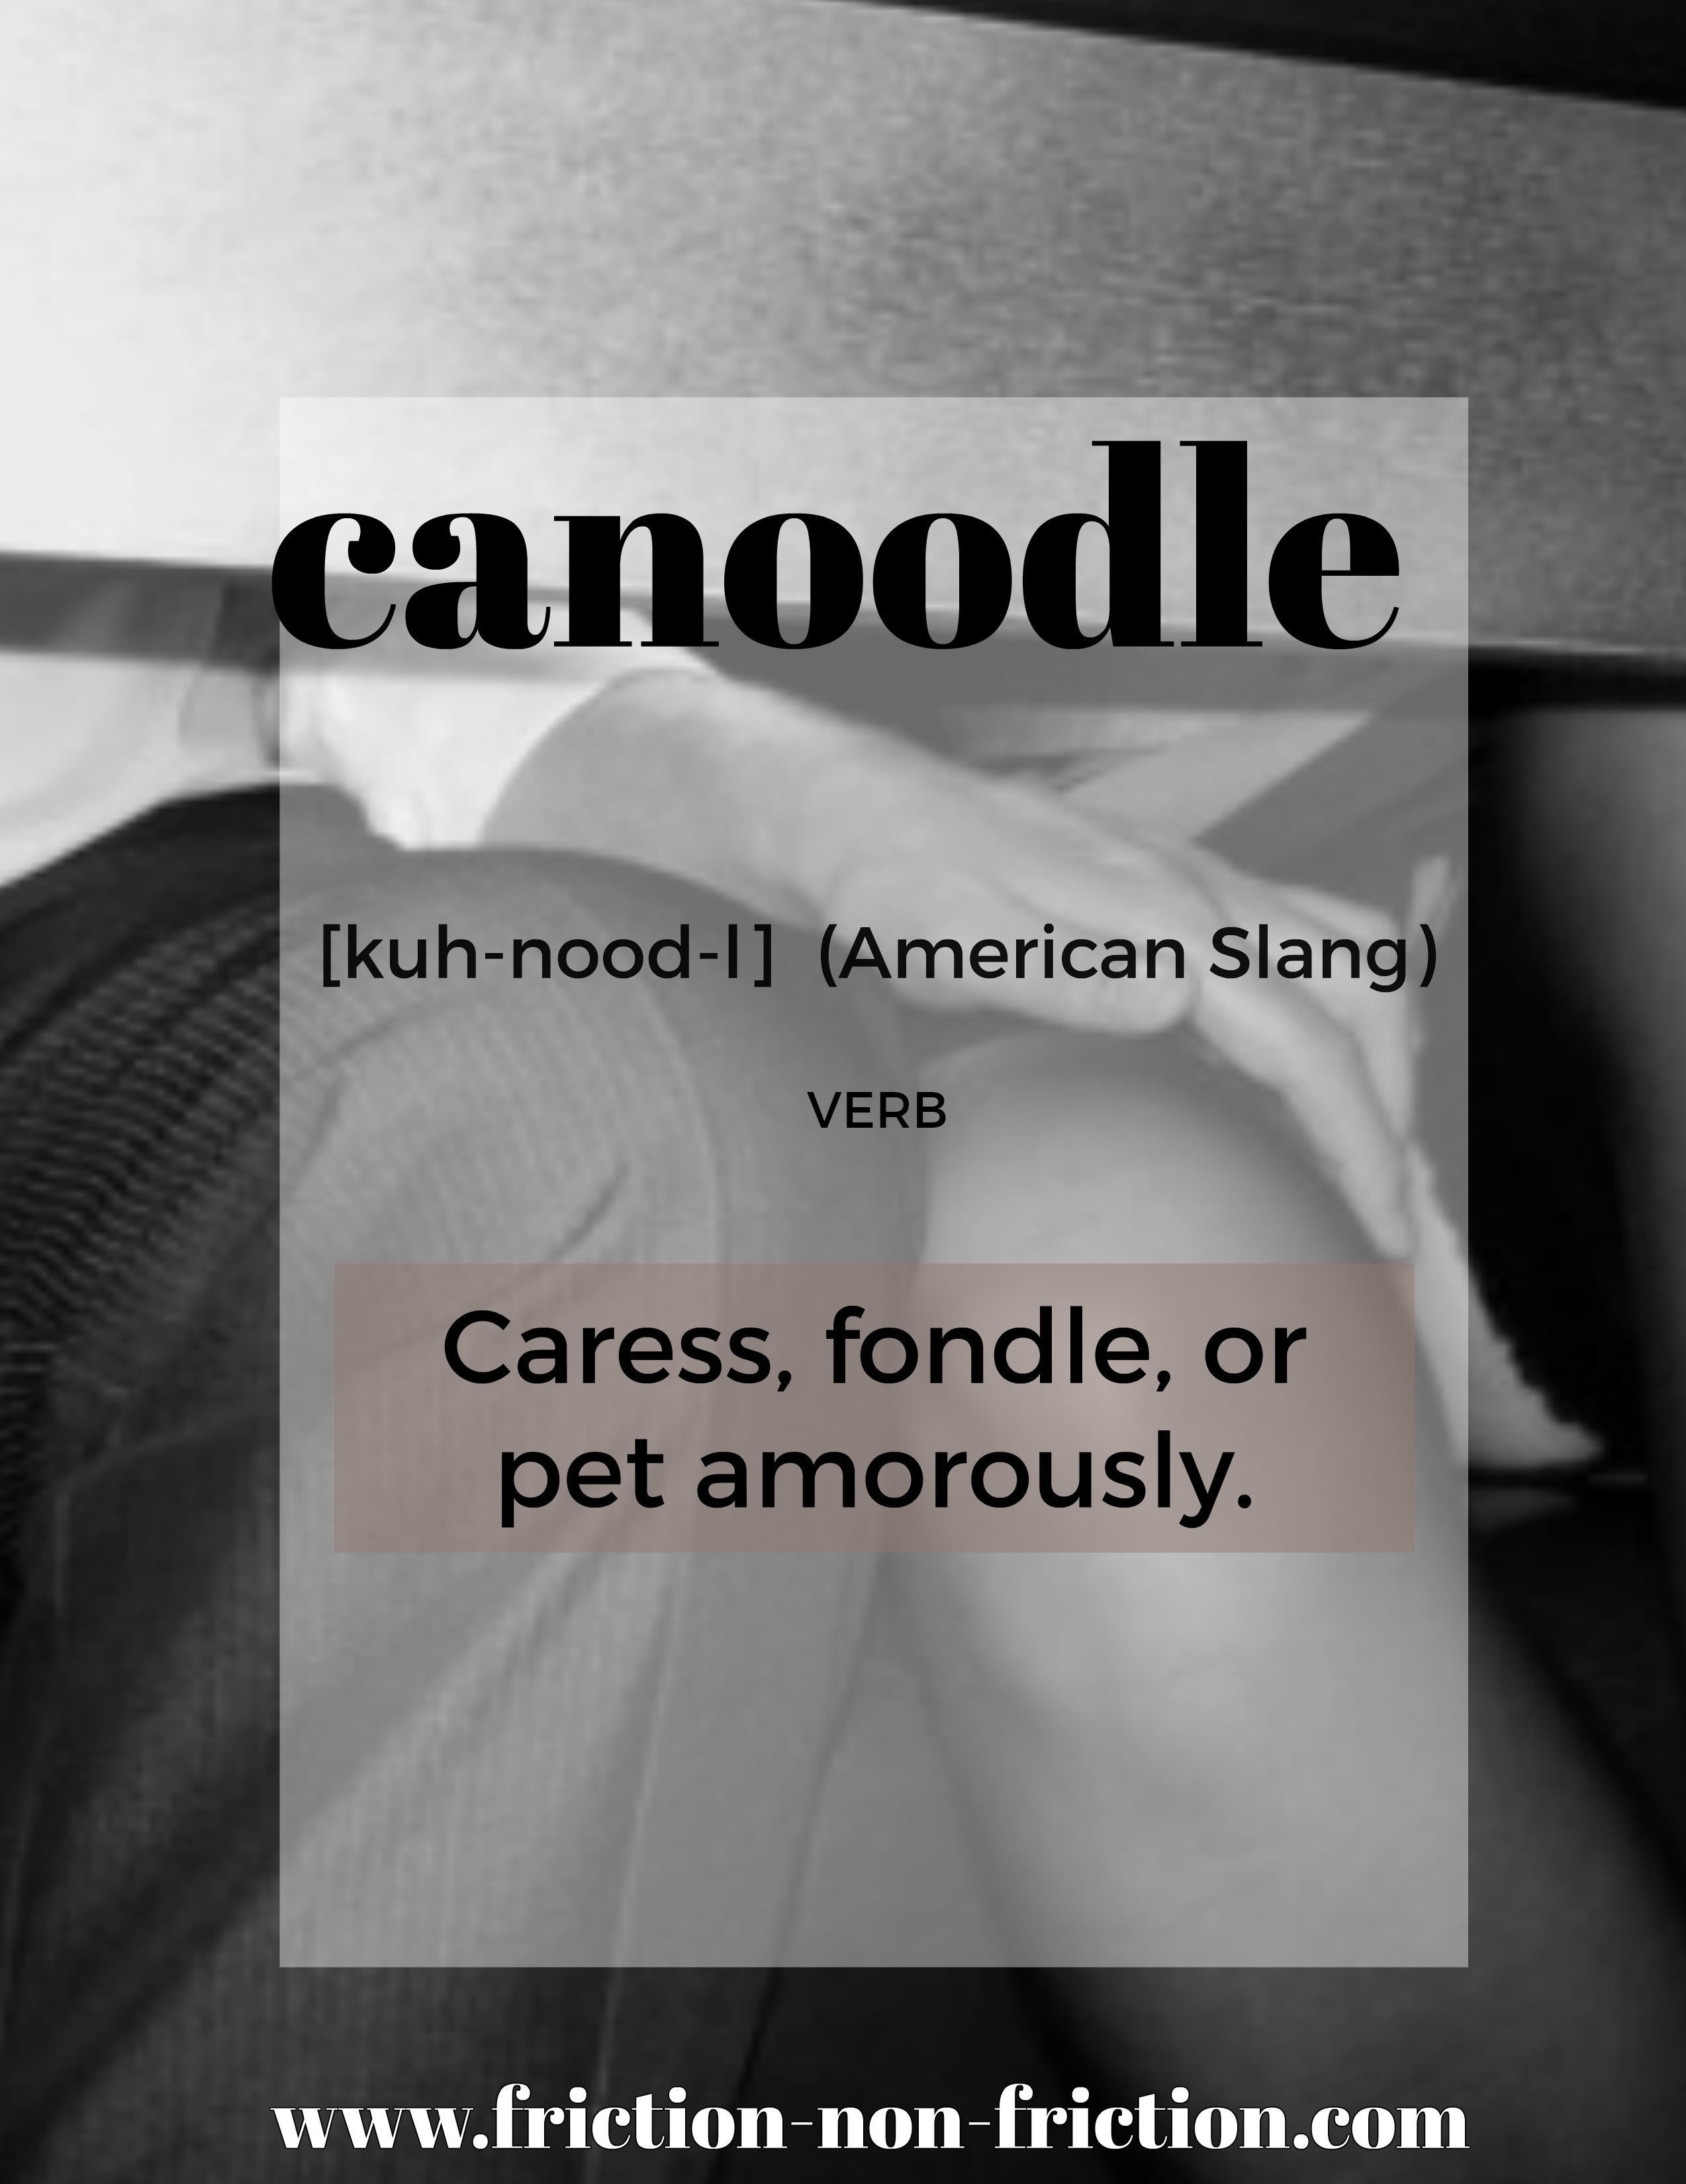 Amazing Canoodle    Another Great FRICTIONARY Definition From Friction|non|Friction